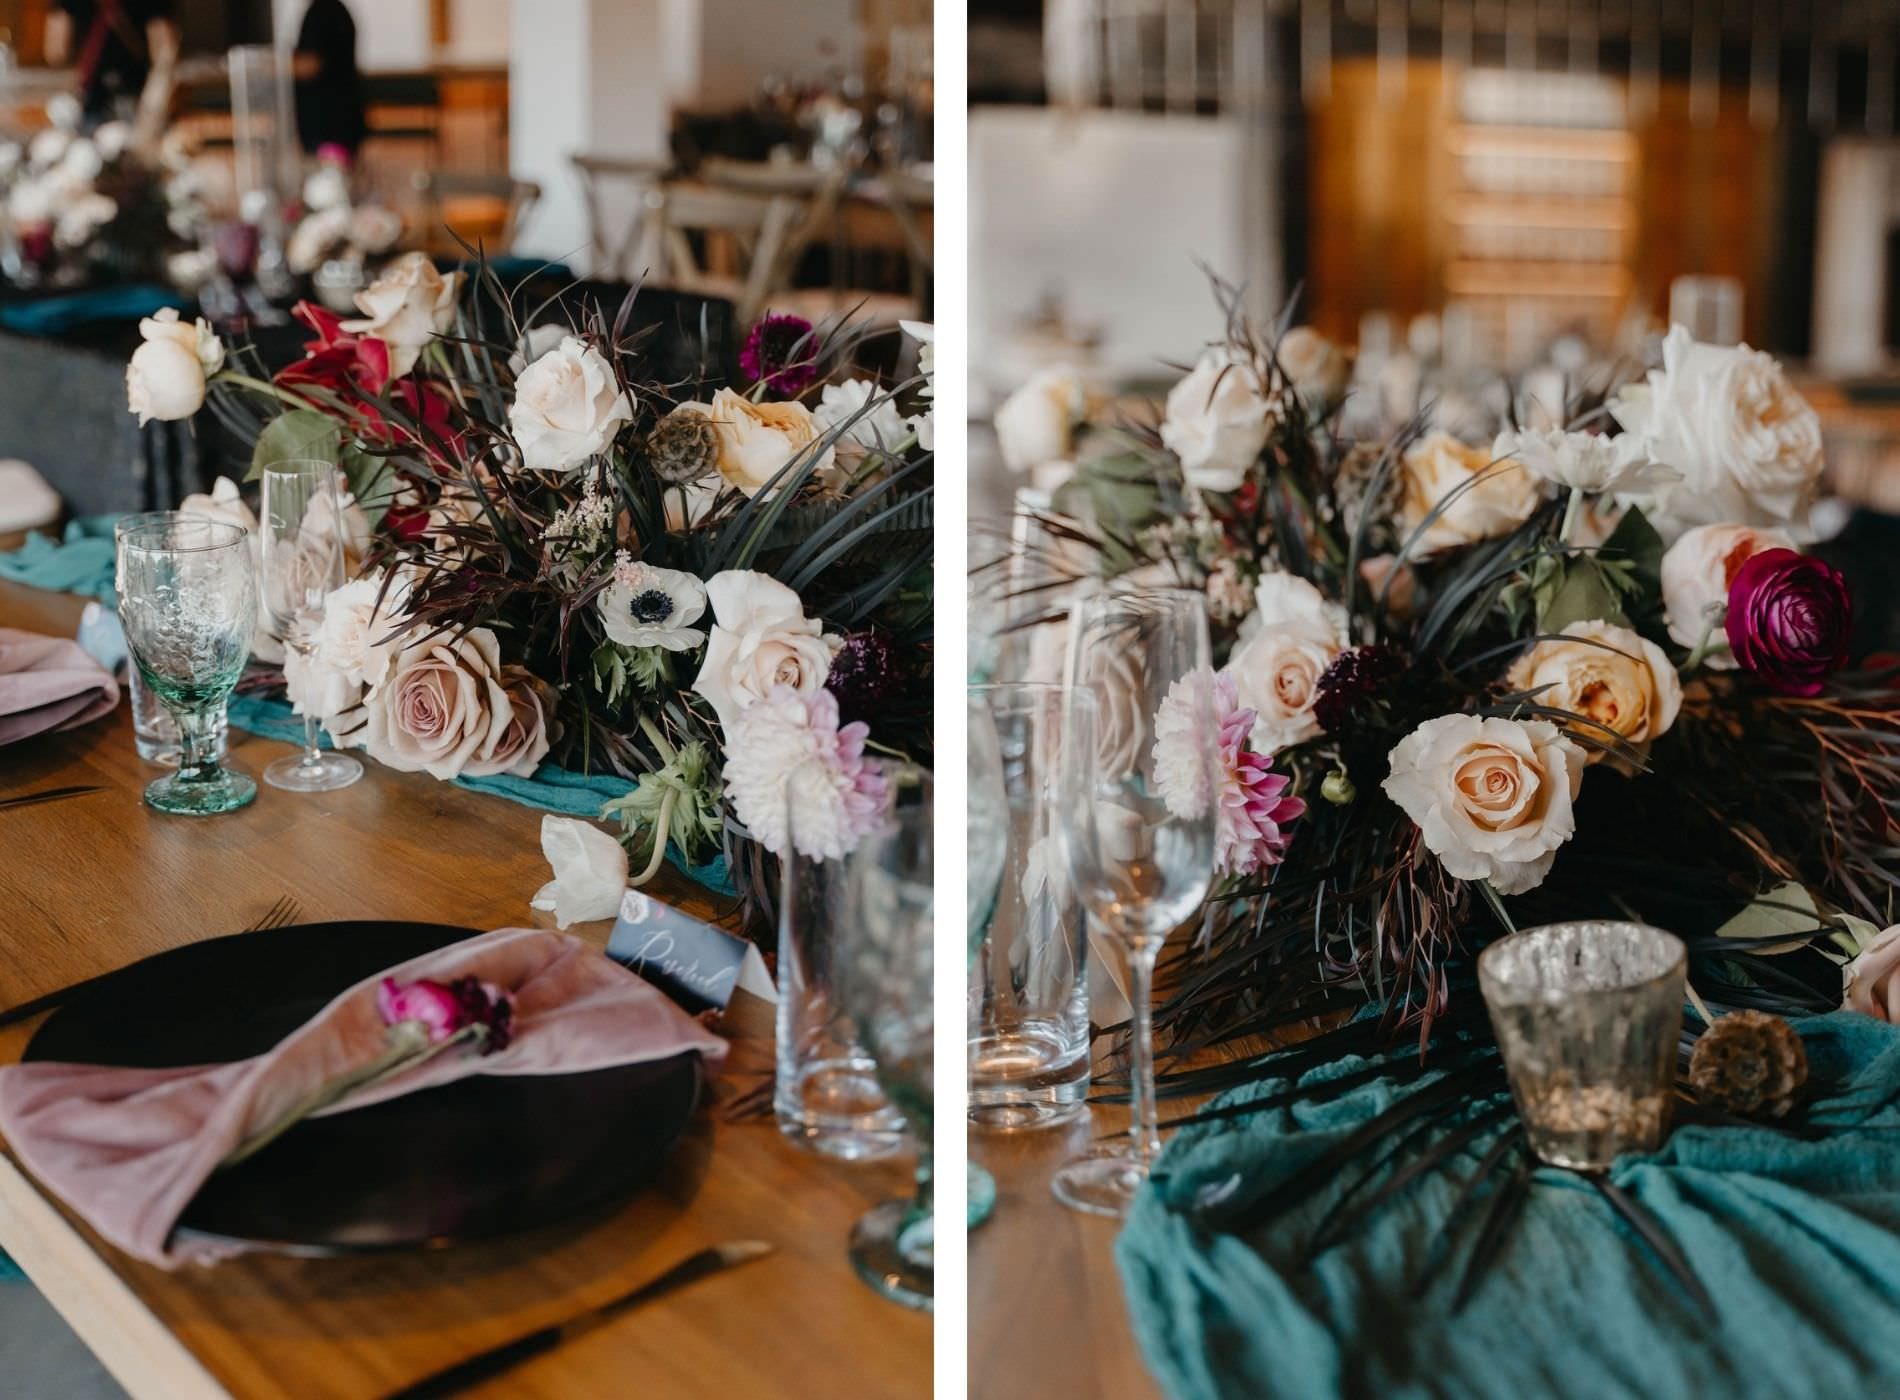 Wedding Reception Centerpiece with Dark Emerald Green Cheesecloth Gossamer Runners and Mauve Blush Pink Velvet Napkins on Black China Plates   Low Boho Centerpieces with Dark Green and Black Leaves, Scabiosa Pods, Pink Dahlias and Ranunculus, and Blush Cafe au Lait Roses